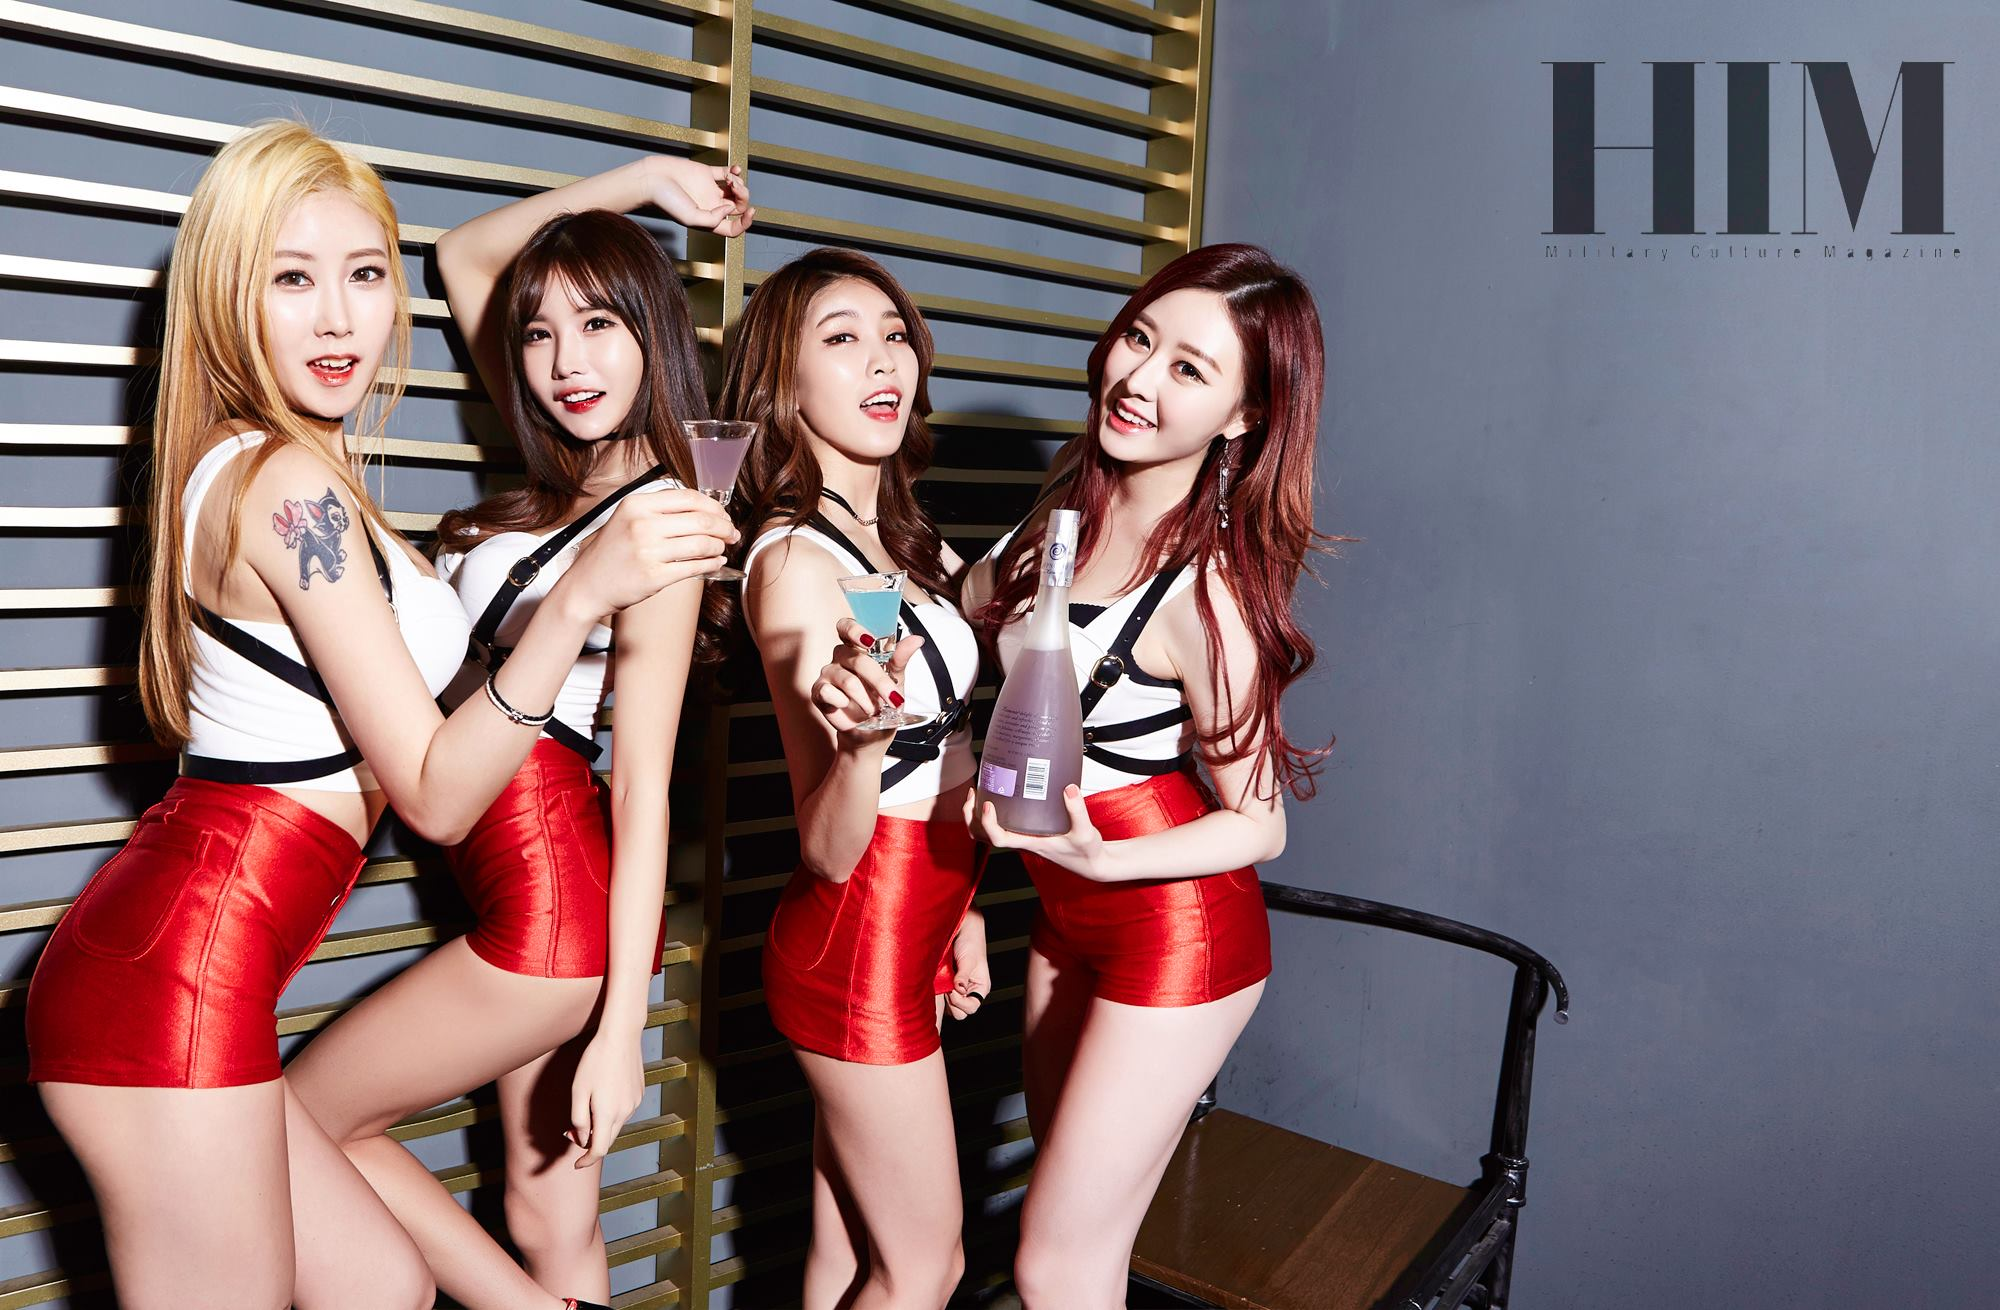 Pocket Girls Stun Fans With New EyeBulging Concept For